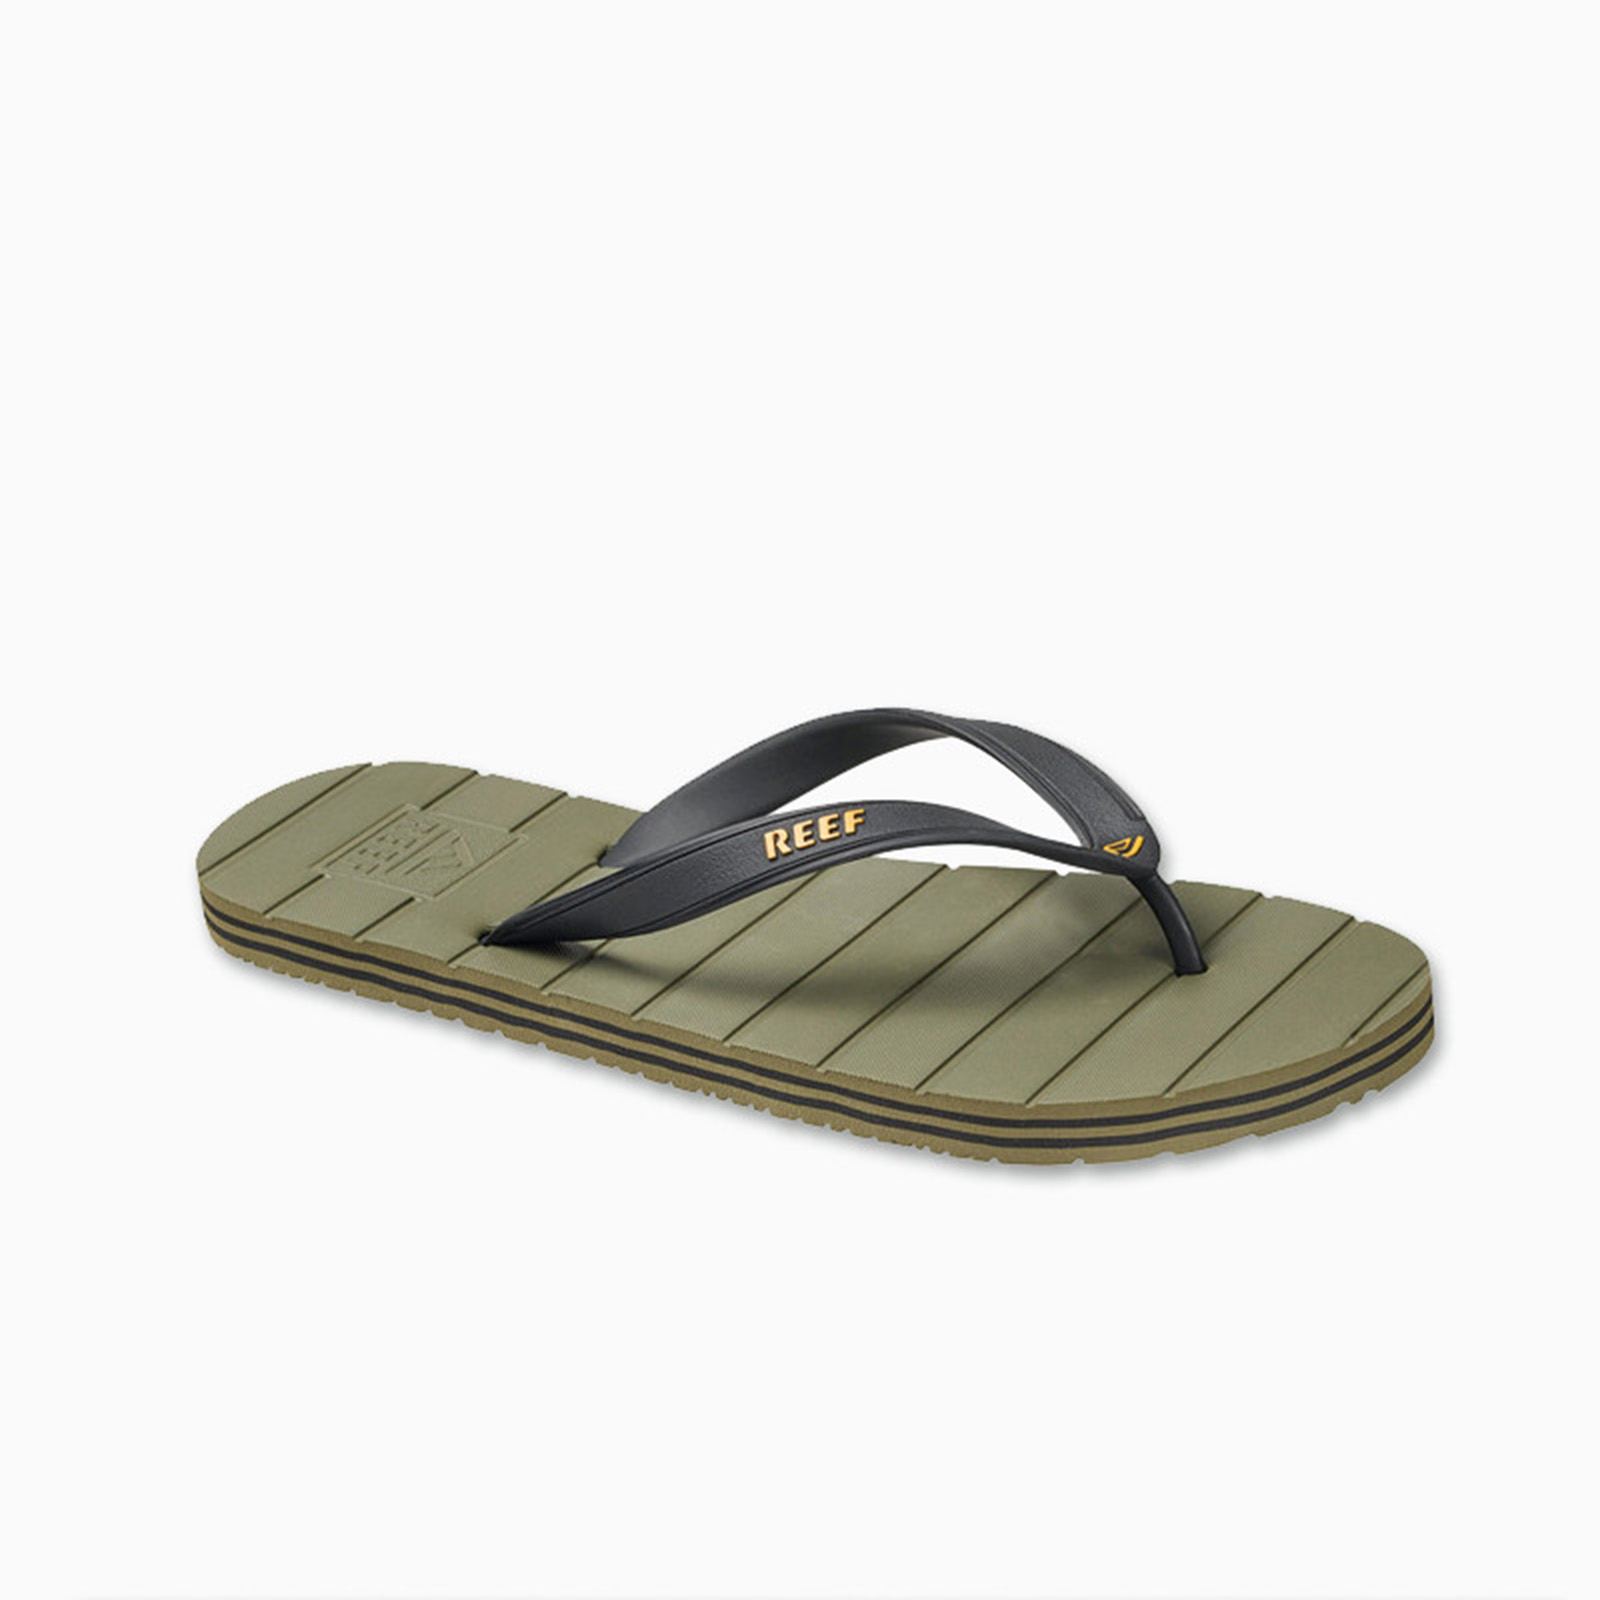 97dd55713335b Comfort green olive flip-flops without PVC - REEF SWITCHFOOT OLIVE/GOLD ...